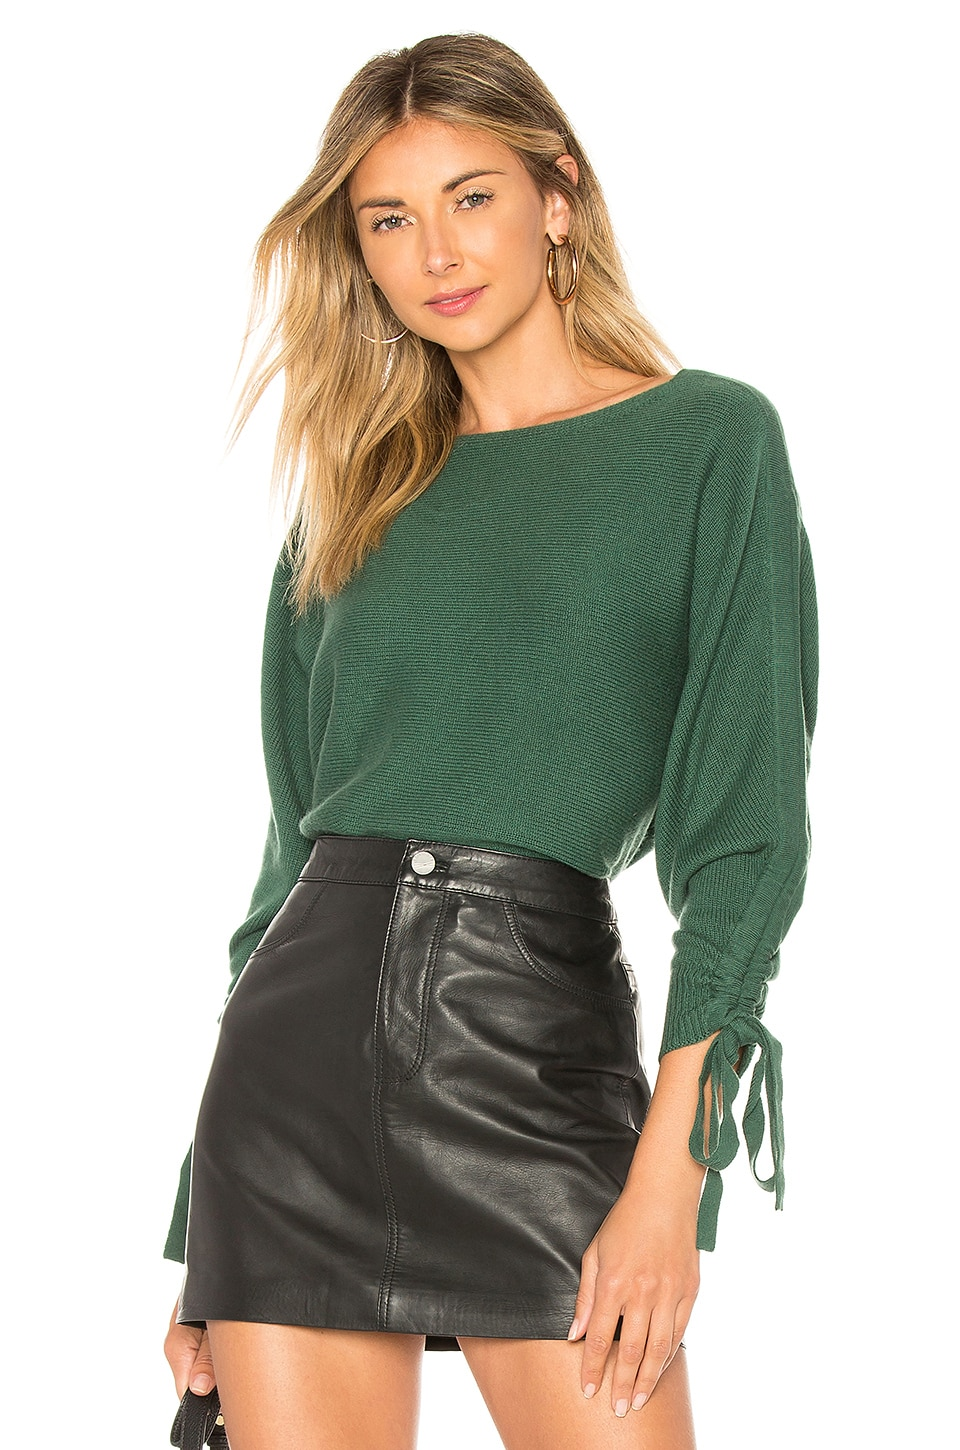 Joie Dannee Sweater in Hunter Green